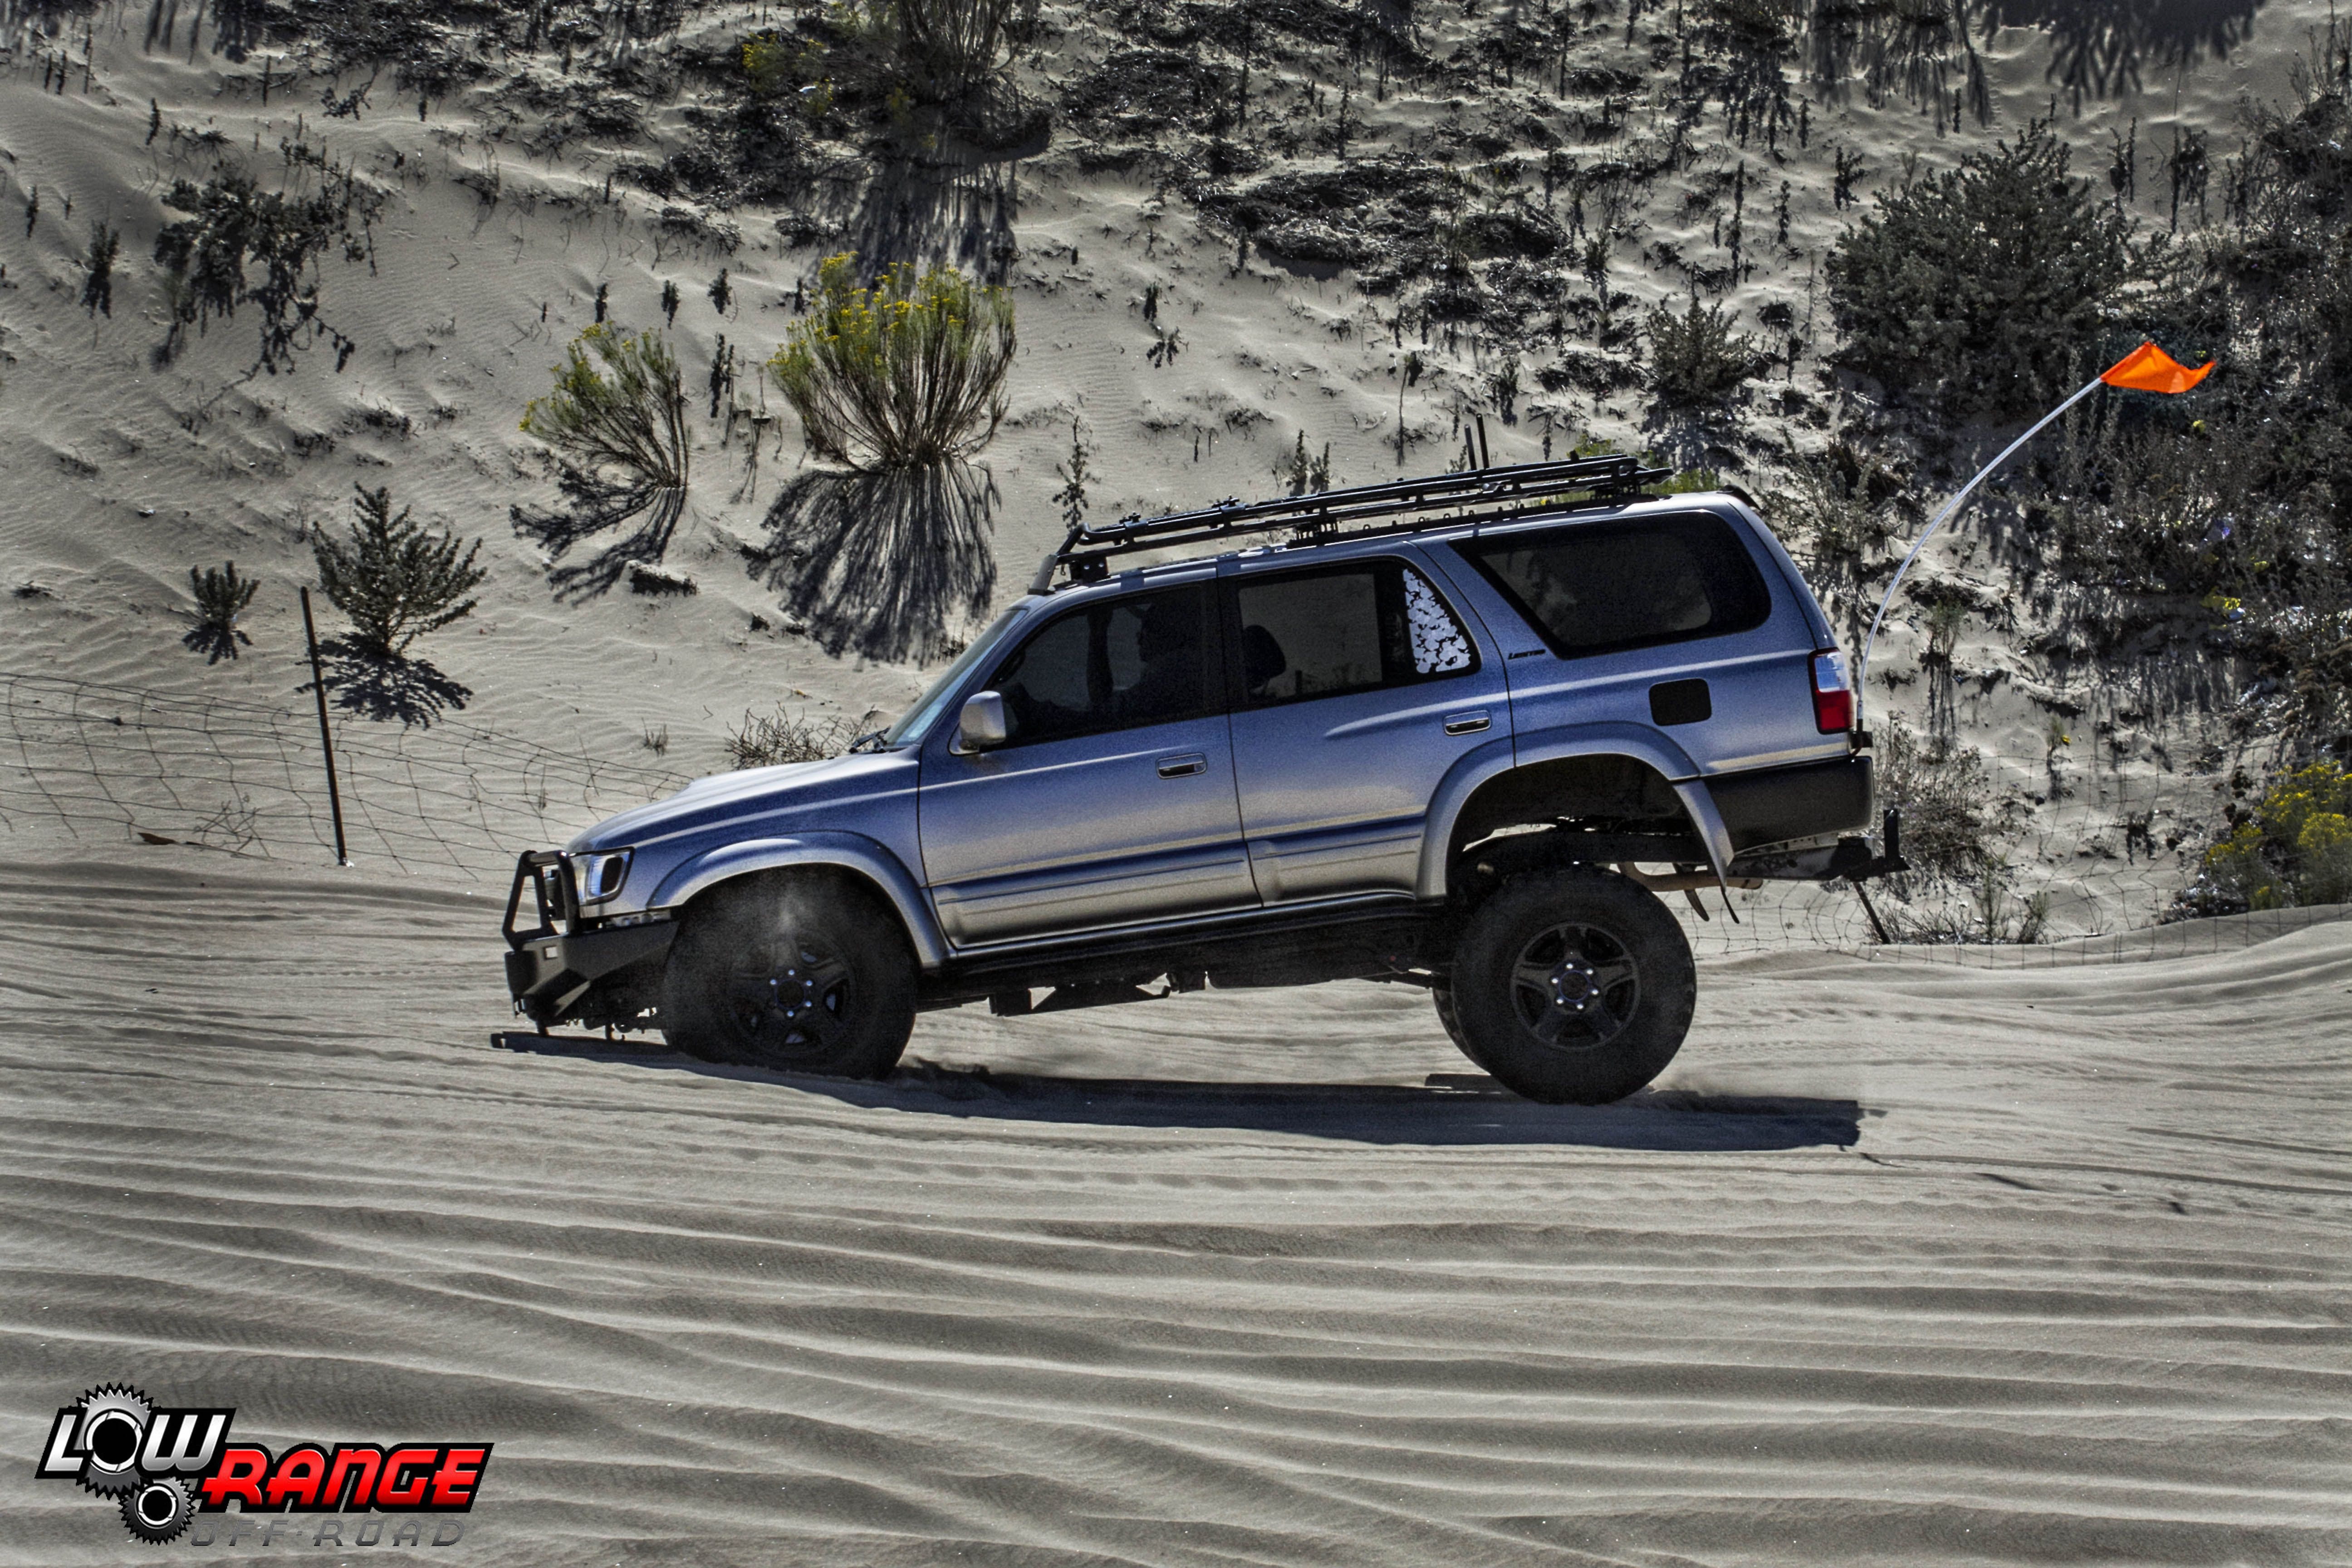 Toyota 4runner Getting A Little Wild In The Sand Dunes Toyota 4runner Lowrangooffroad Pismo Ultimate4x4jamboree 4runner Toyota Off Road Parts